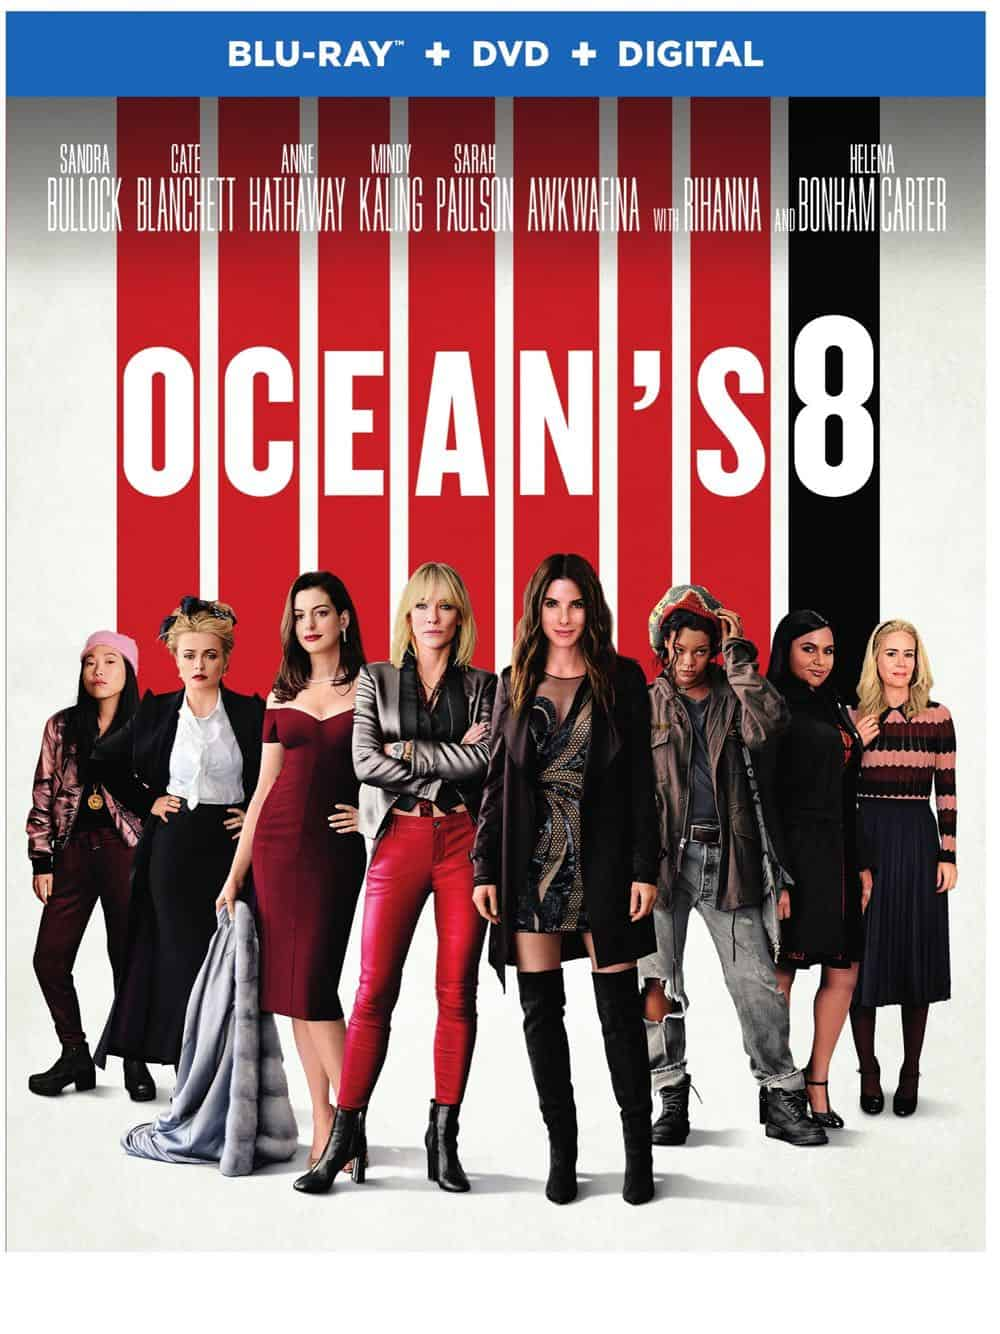 Oceans 8 Bluray DVD Digital 1